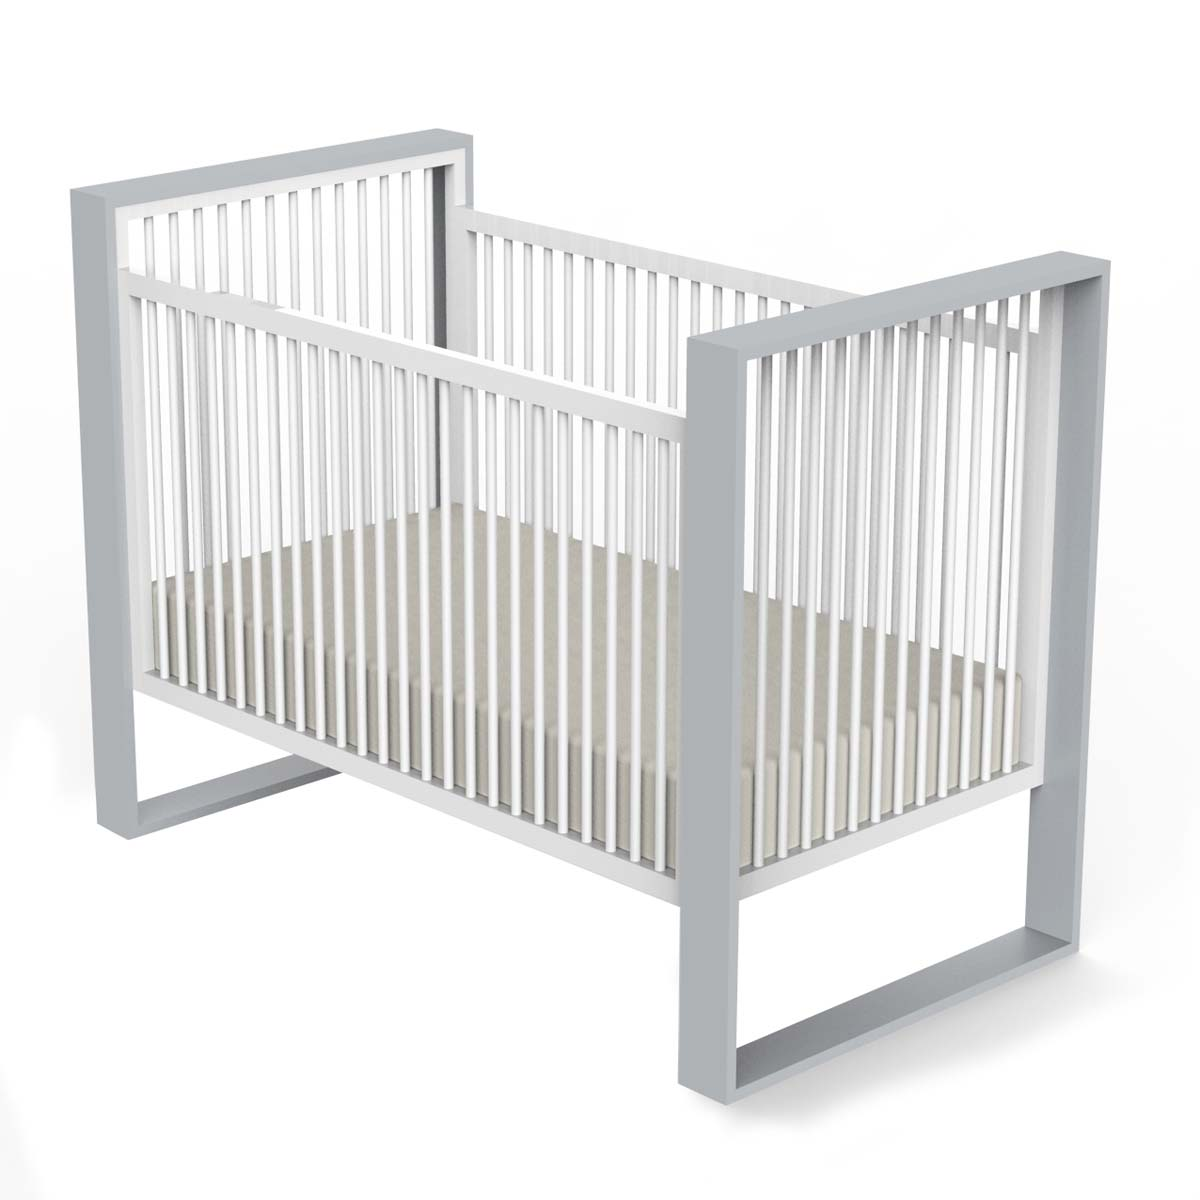 DucDuc Austin Crib in Light Grey & White